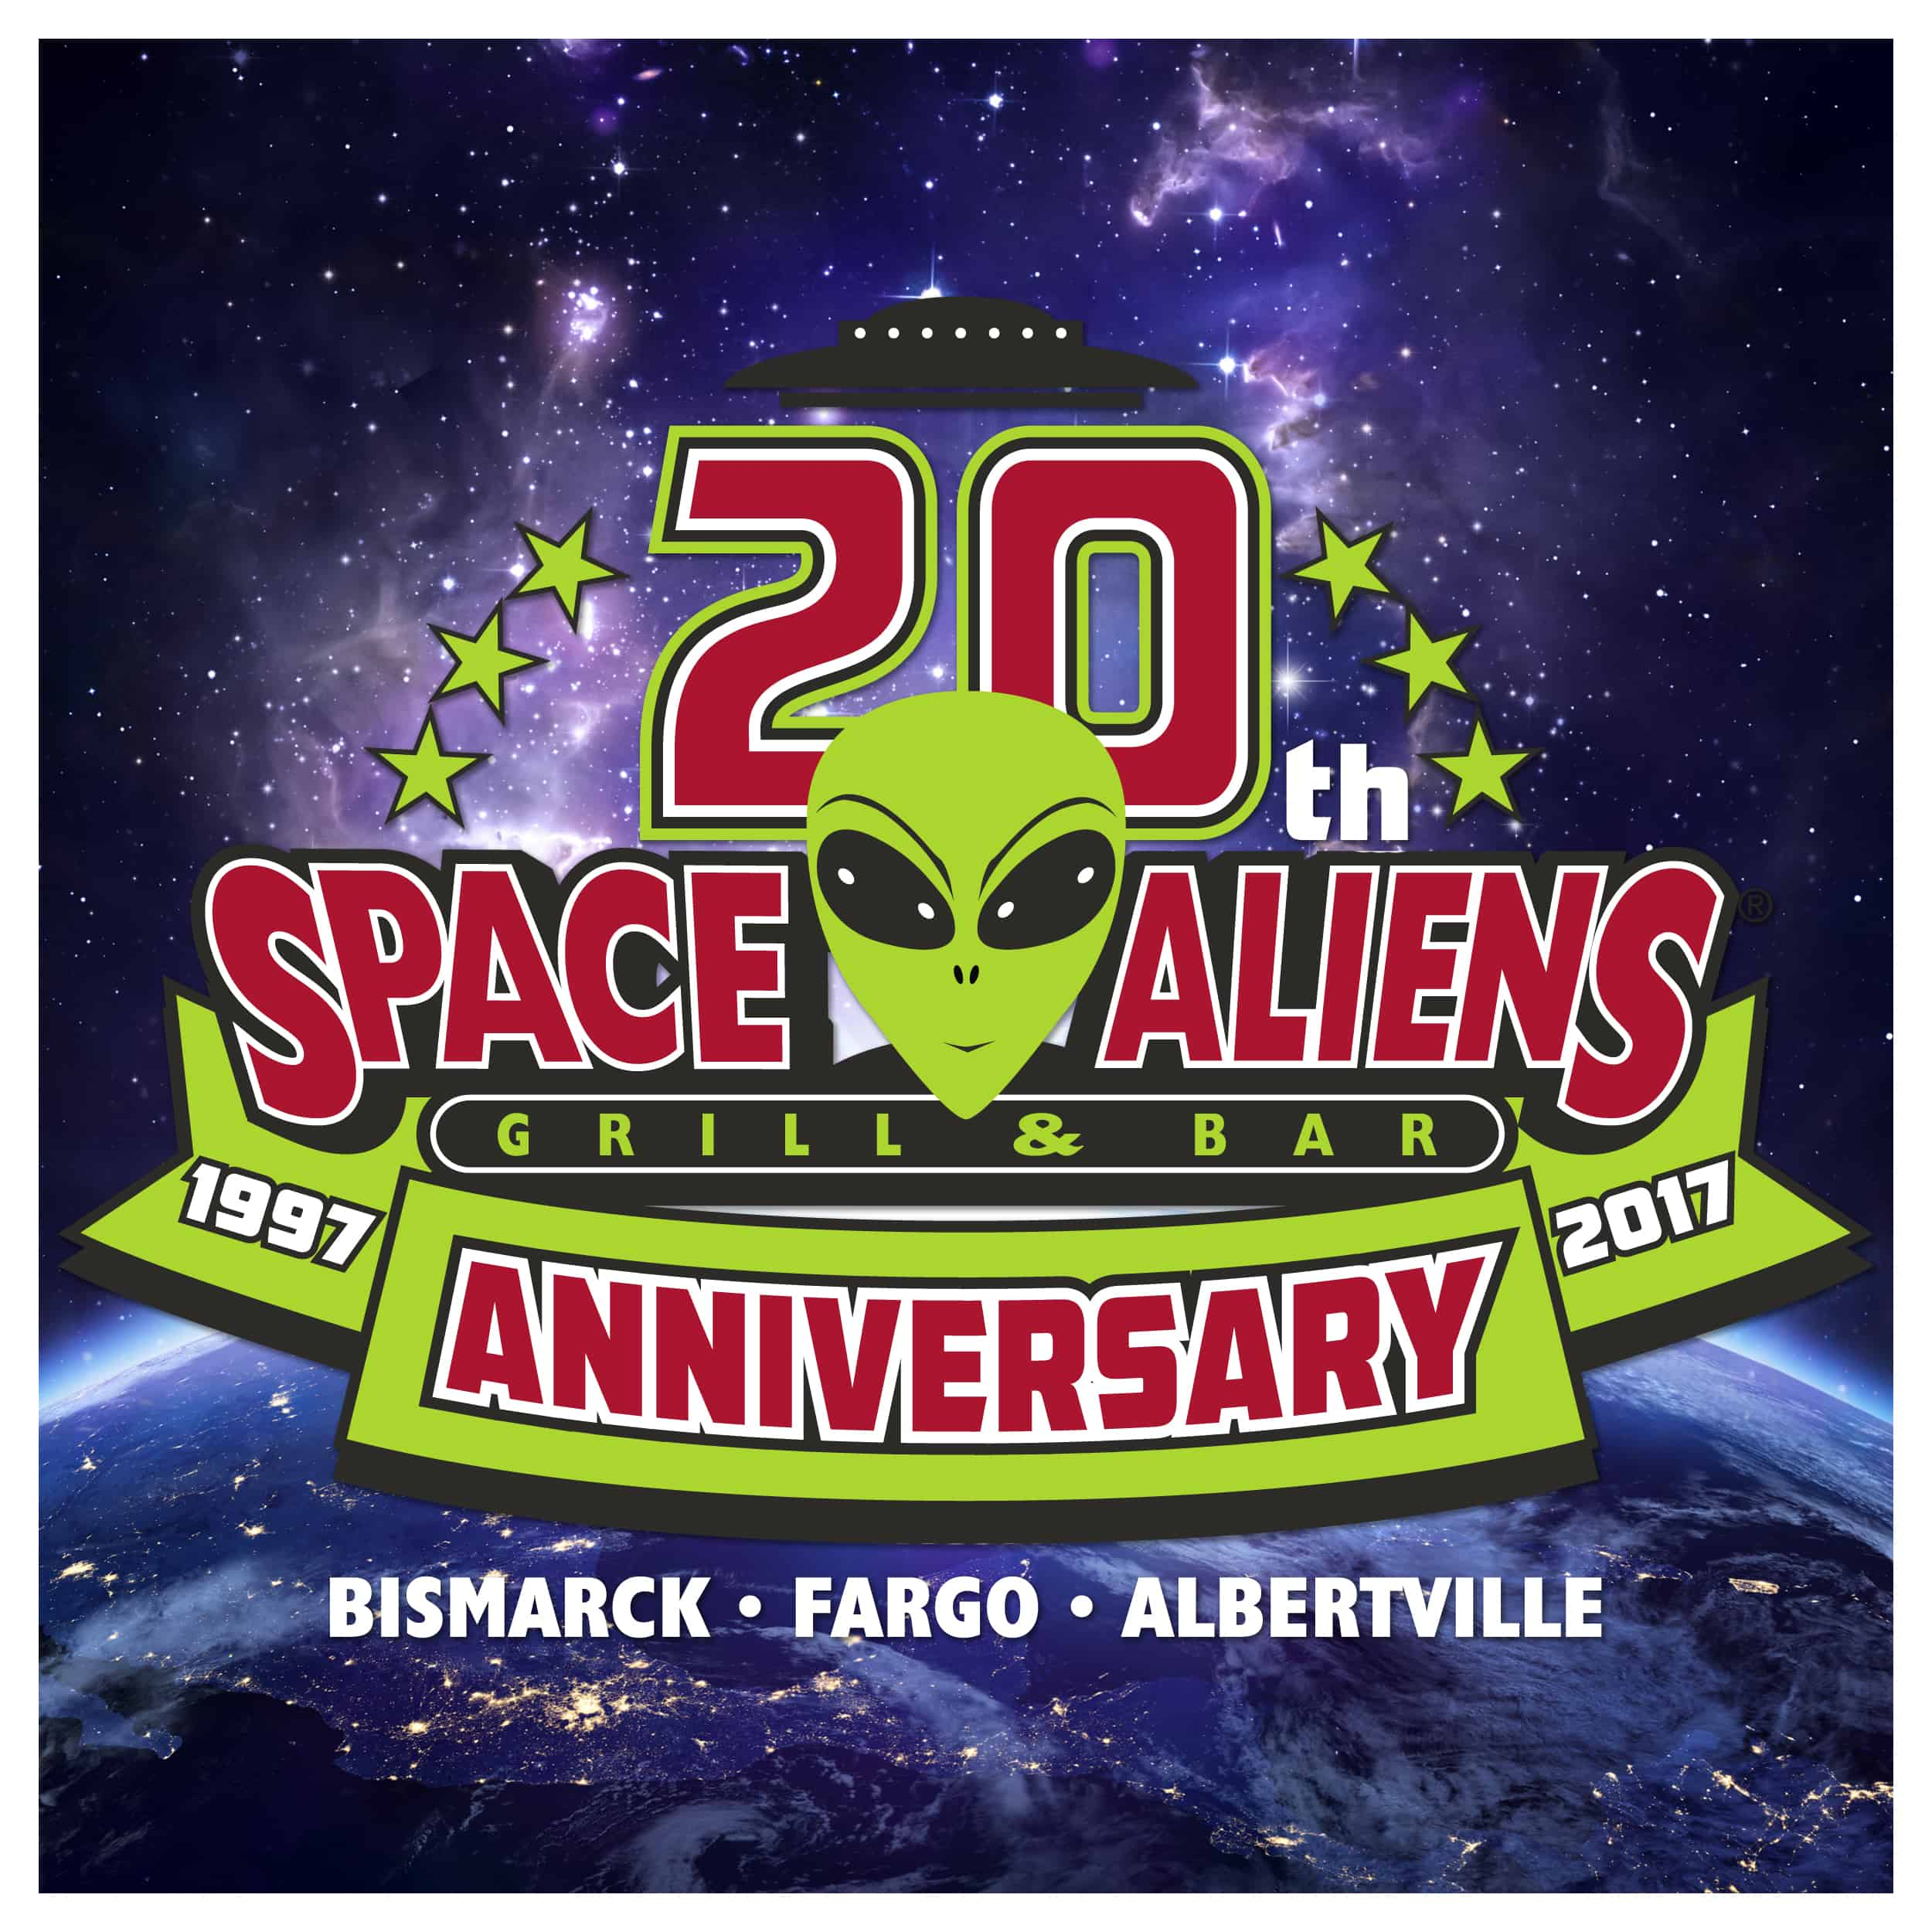 Space Aliens Anniversary